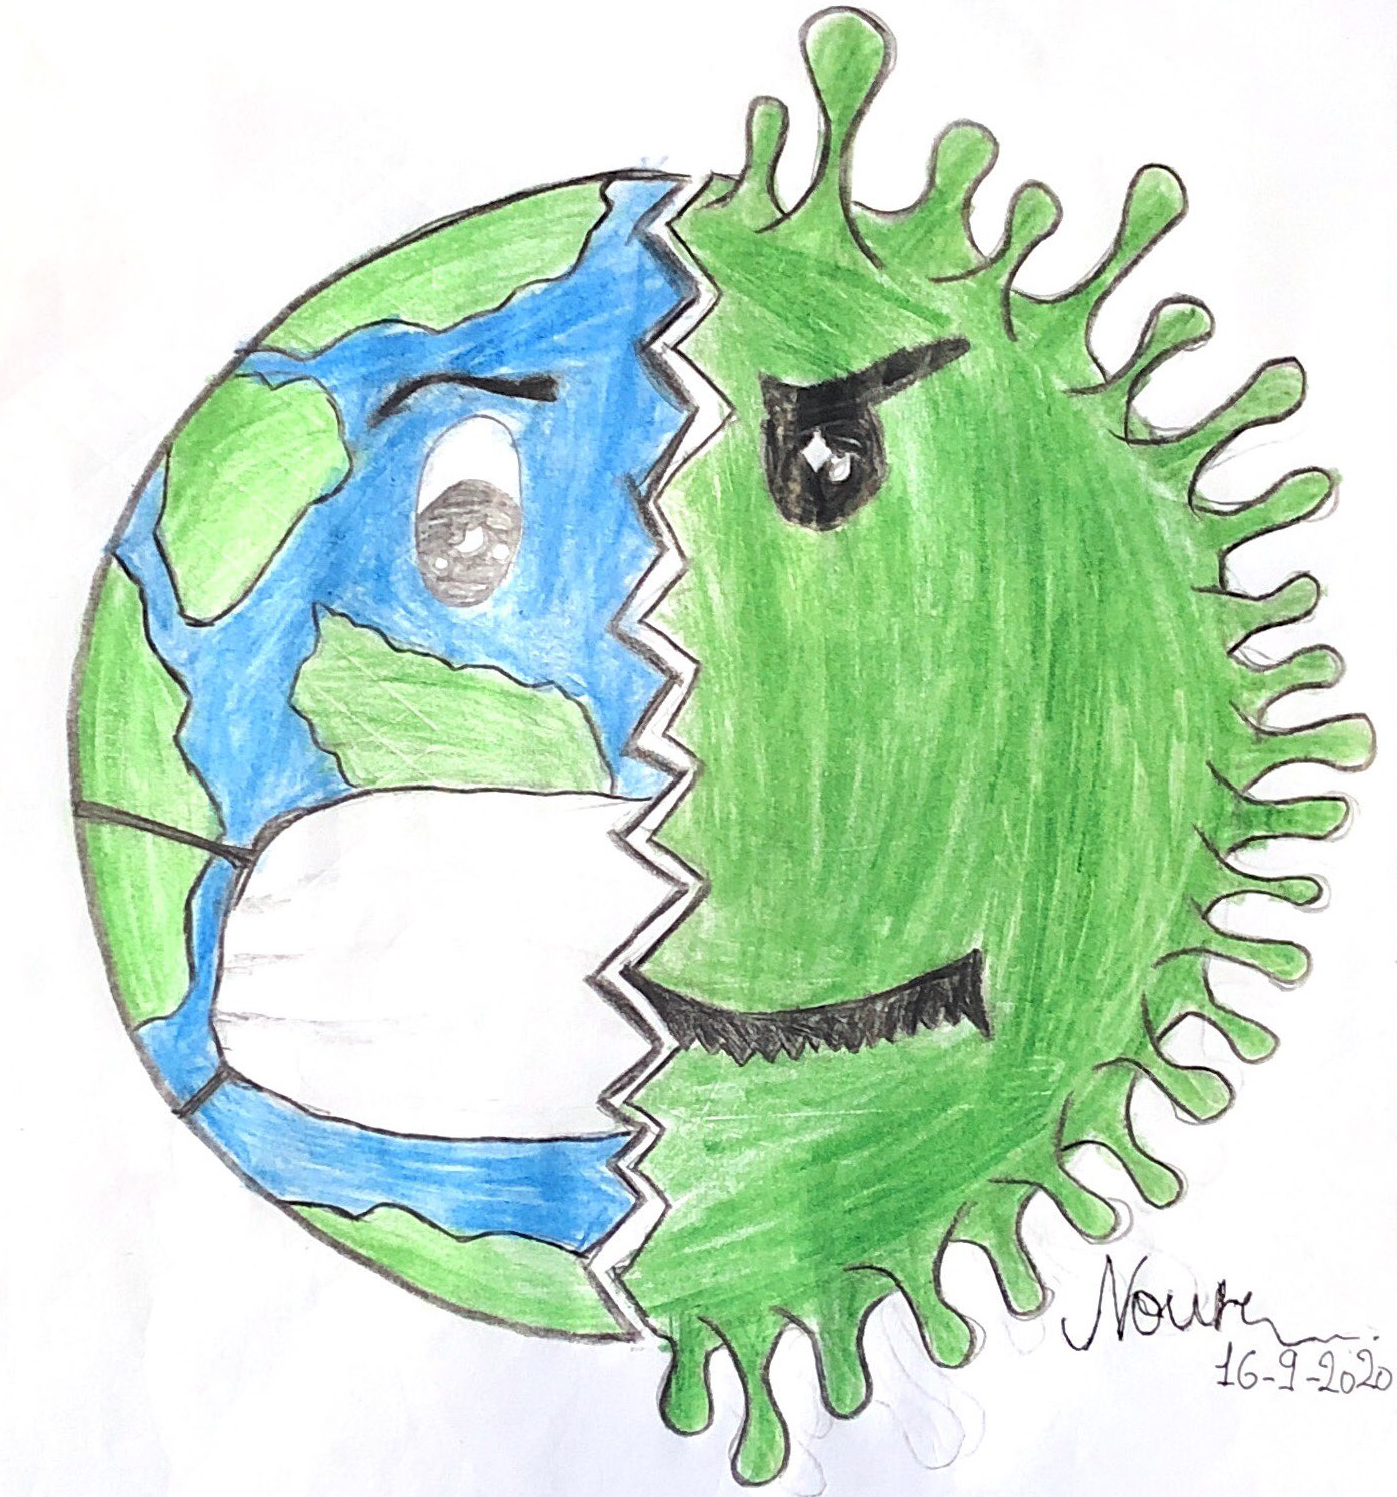 The resisting earth by Nour